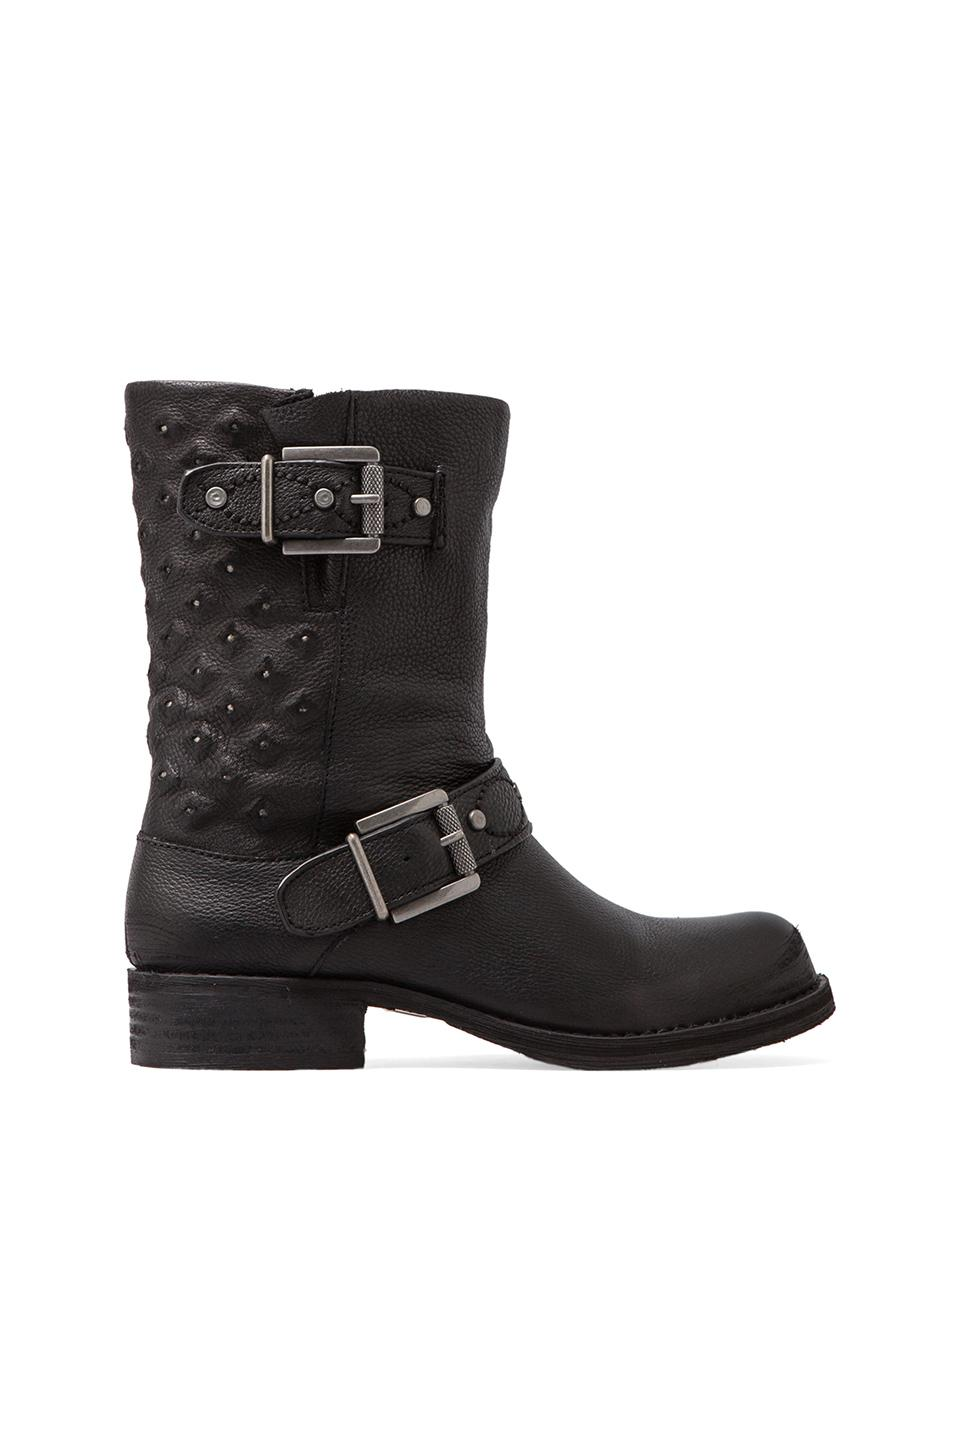 Sam Edelman Bevin Boot in Black